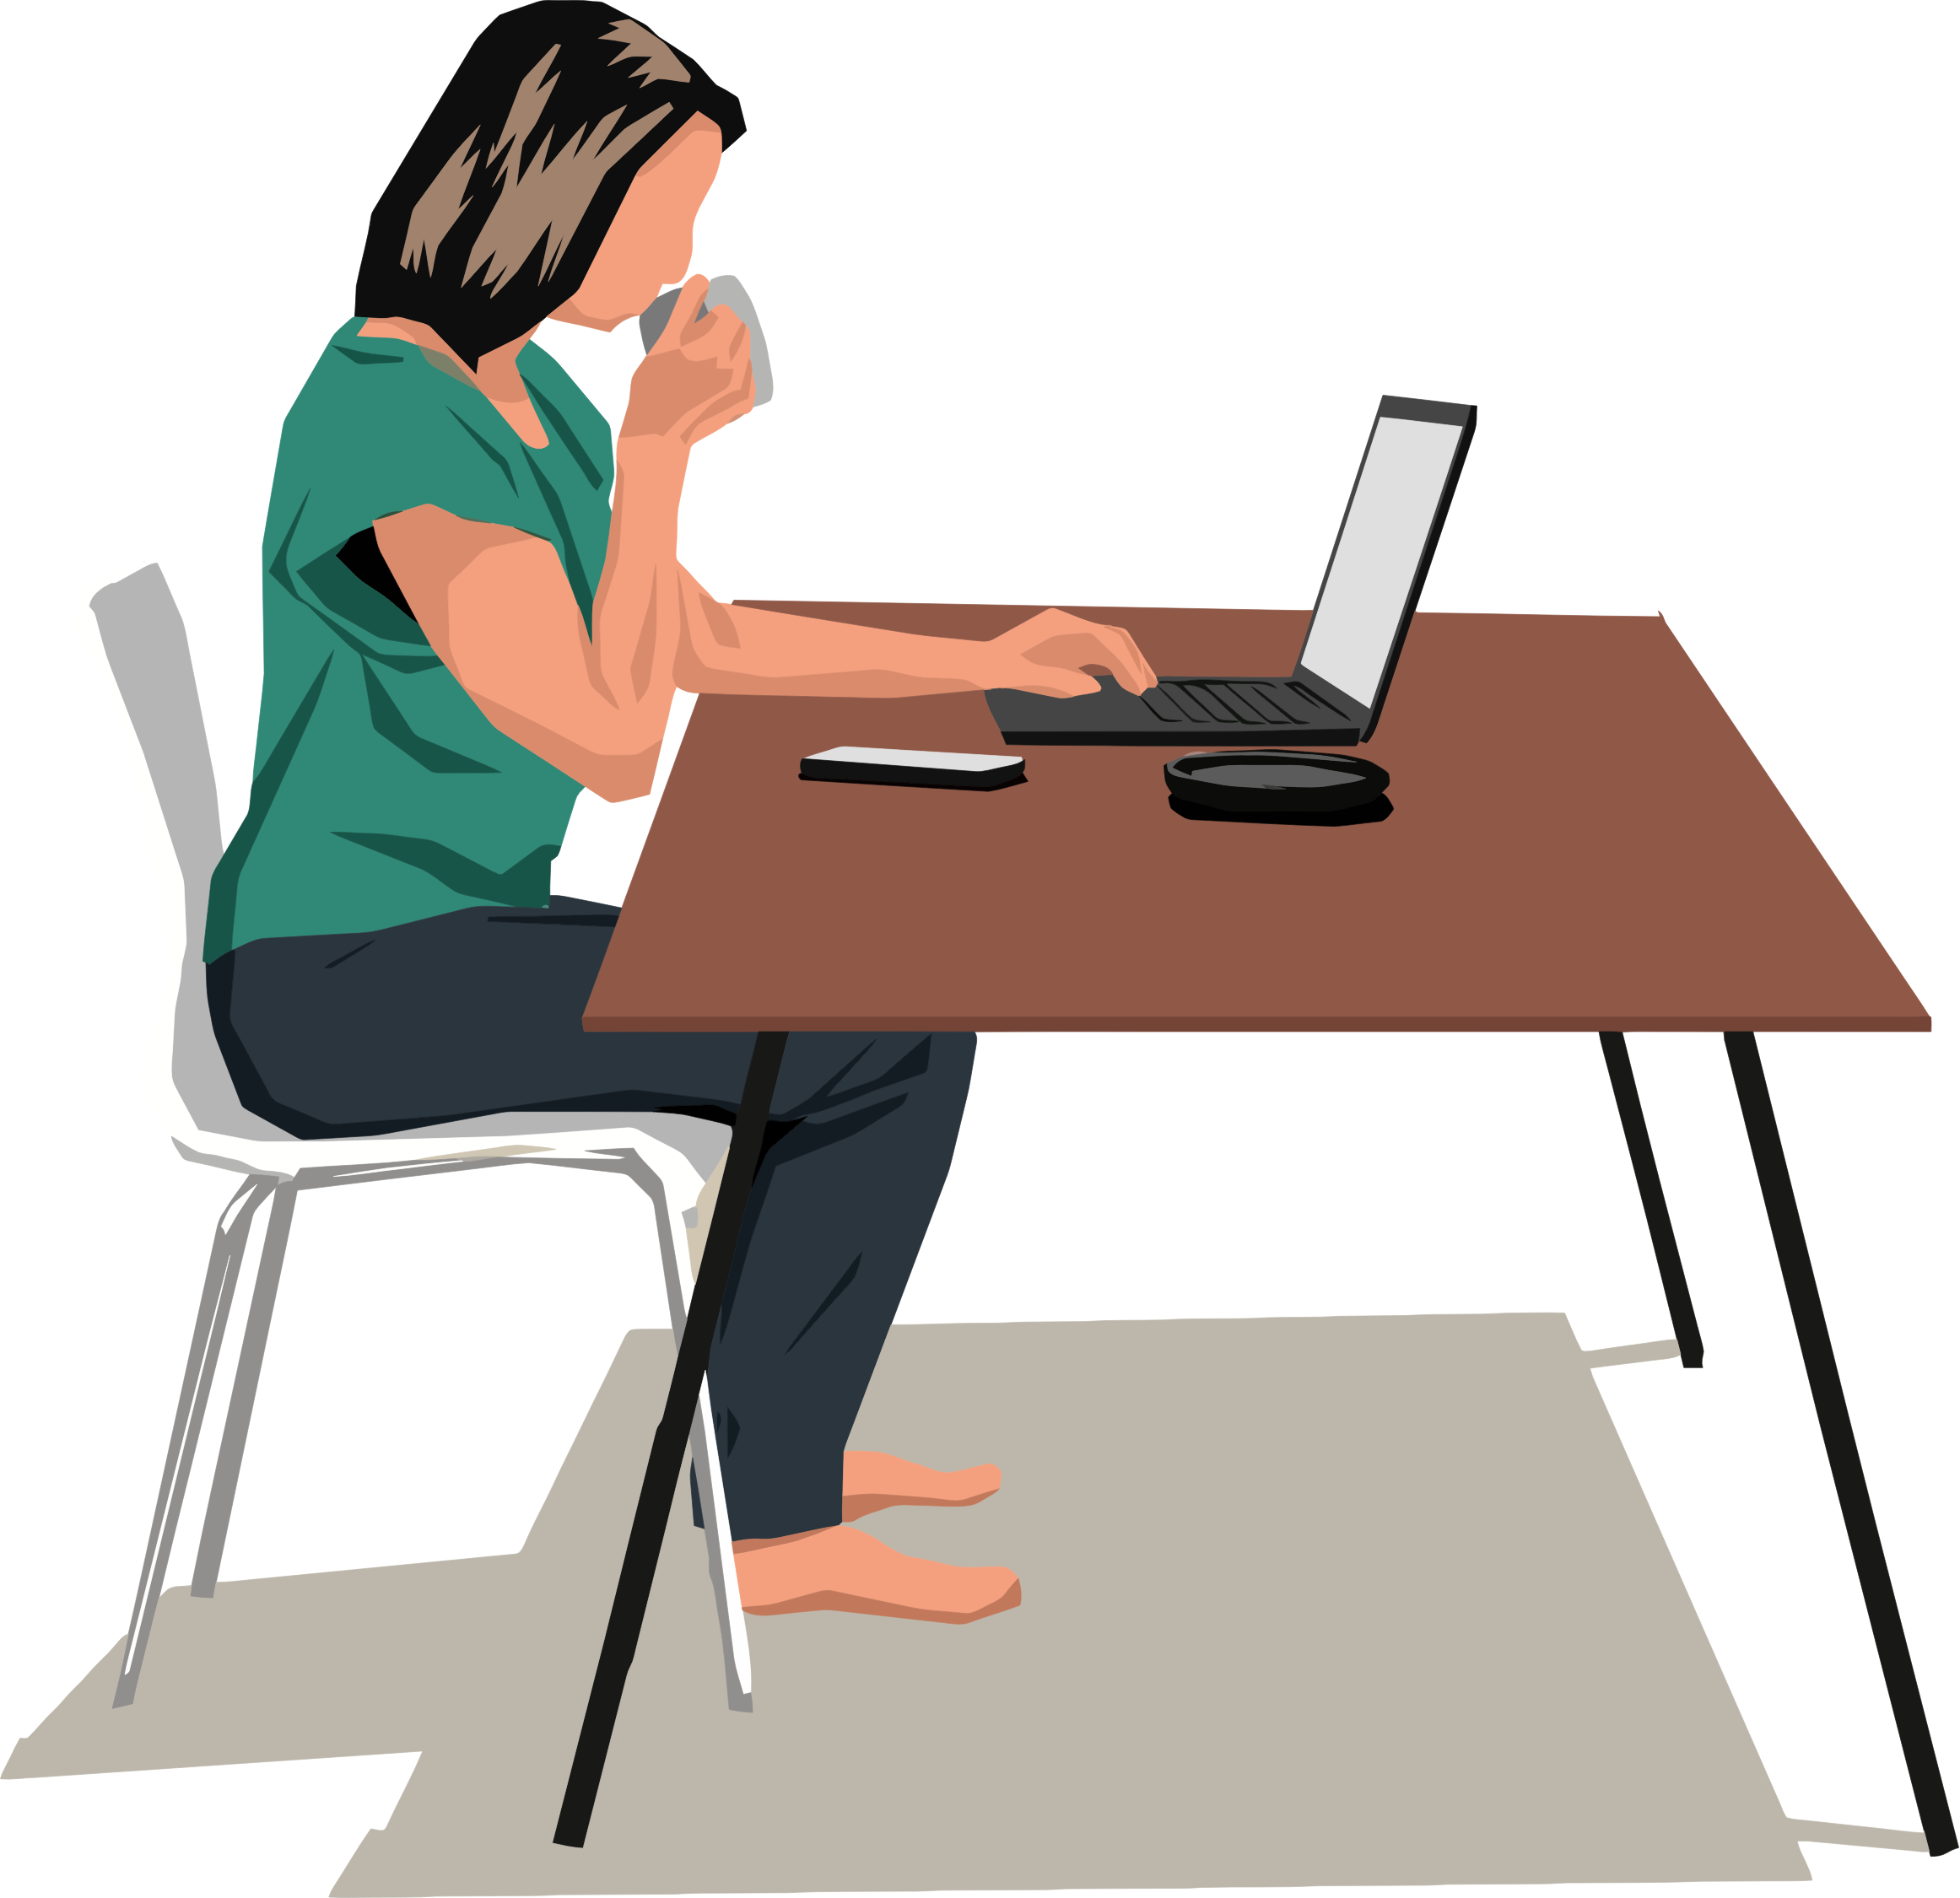 Laptop clipart female, Laptop female Transparent FREE for.